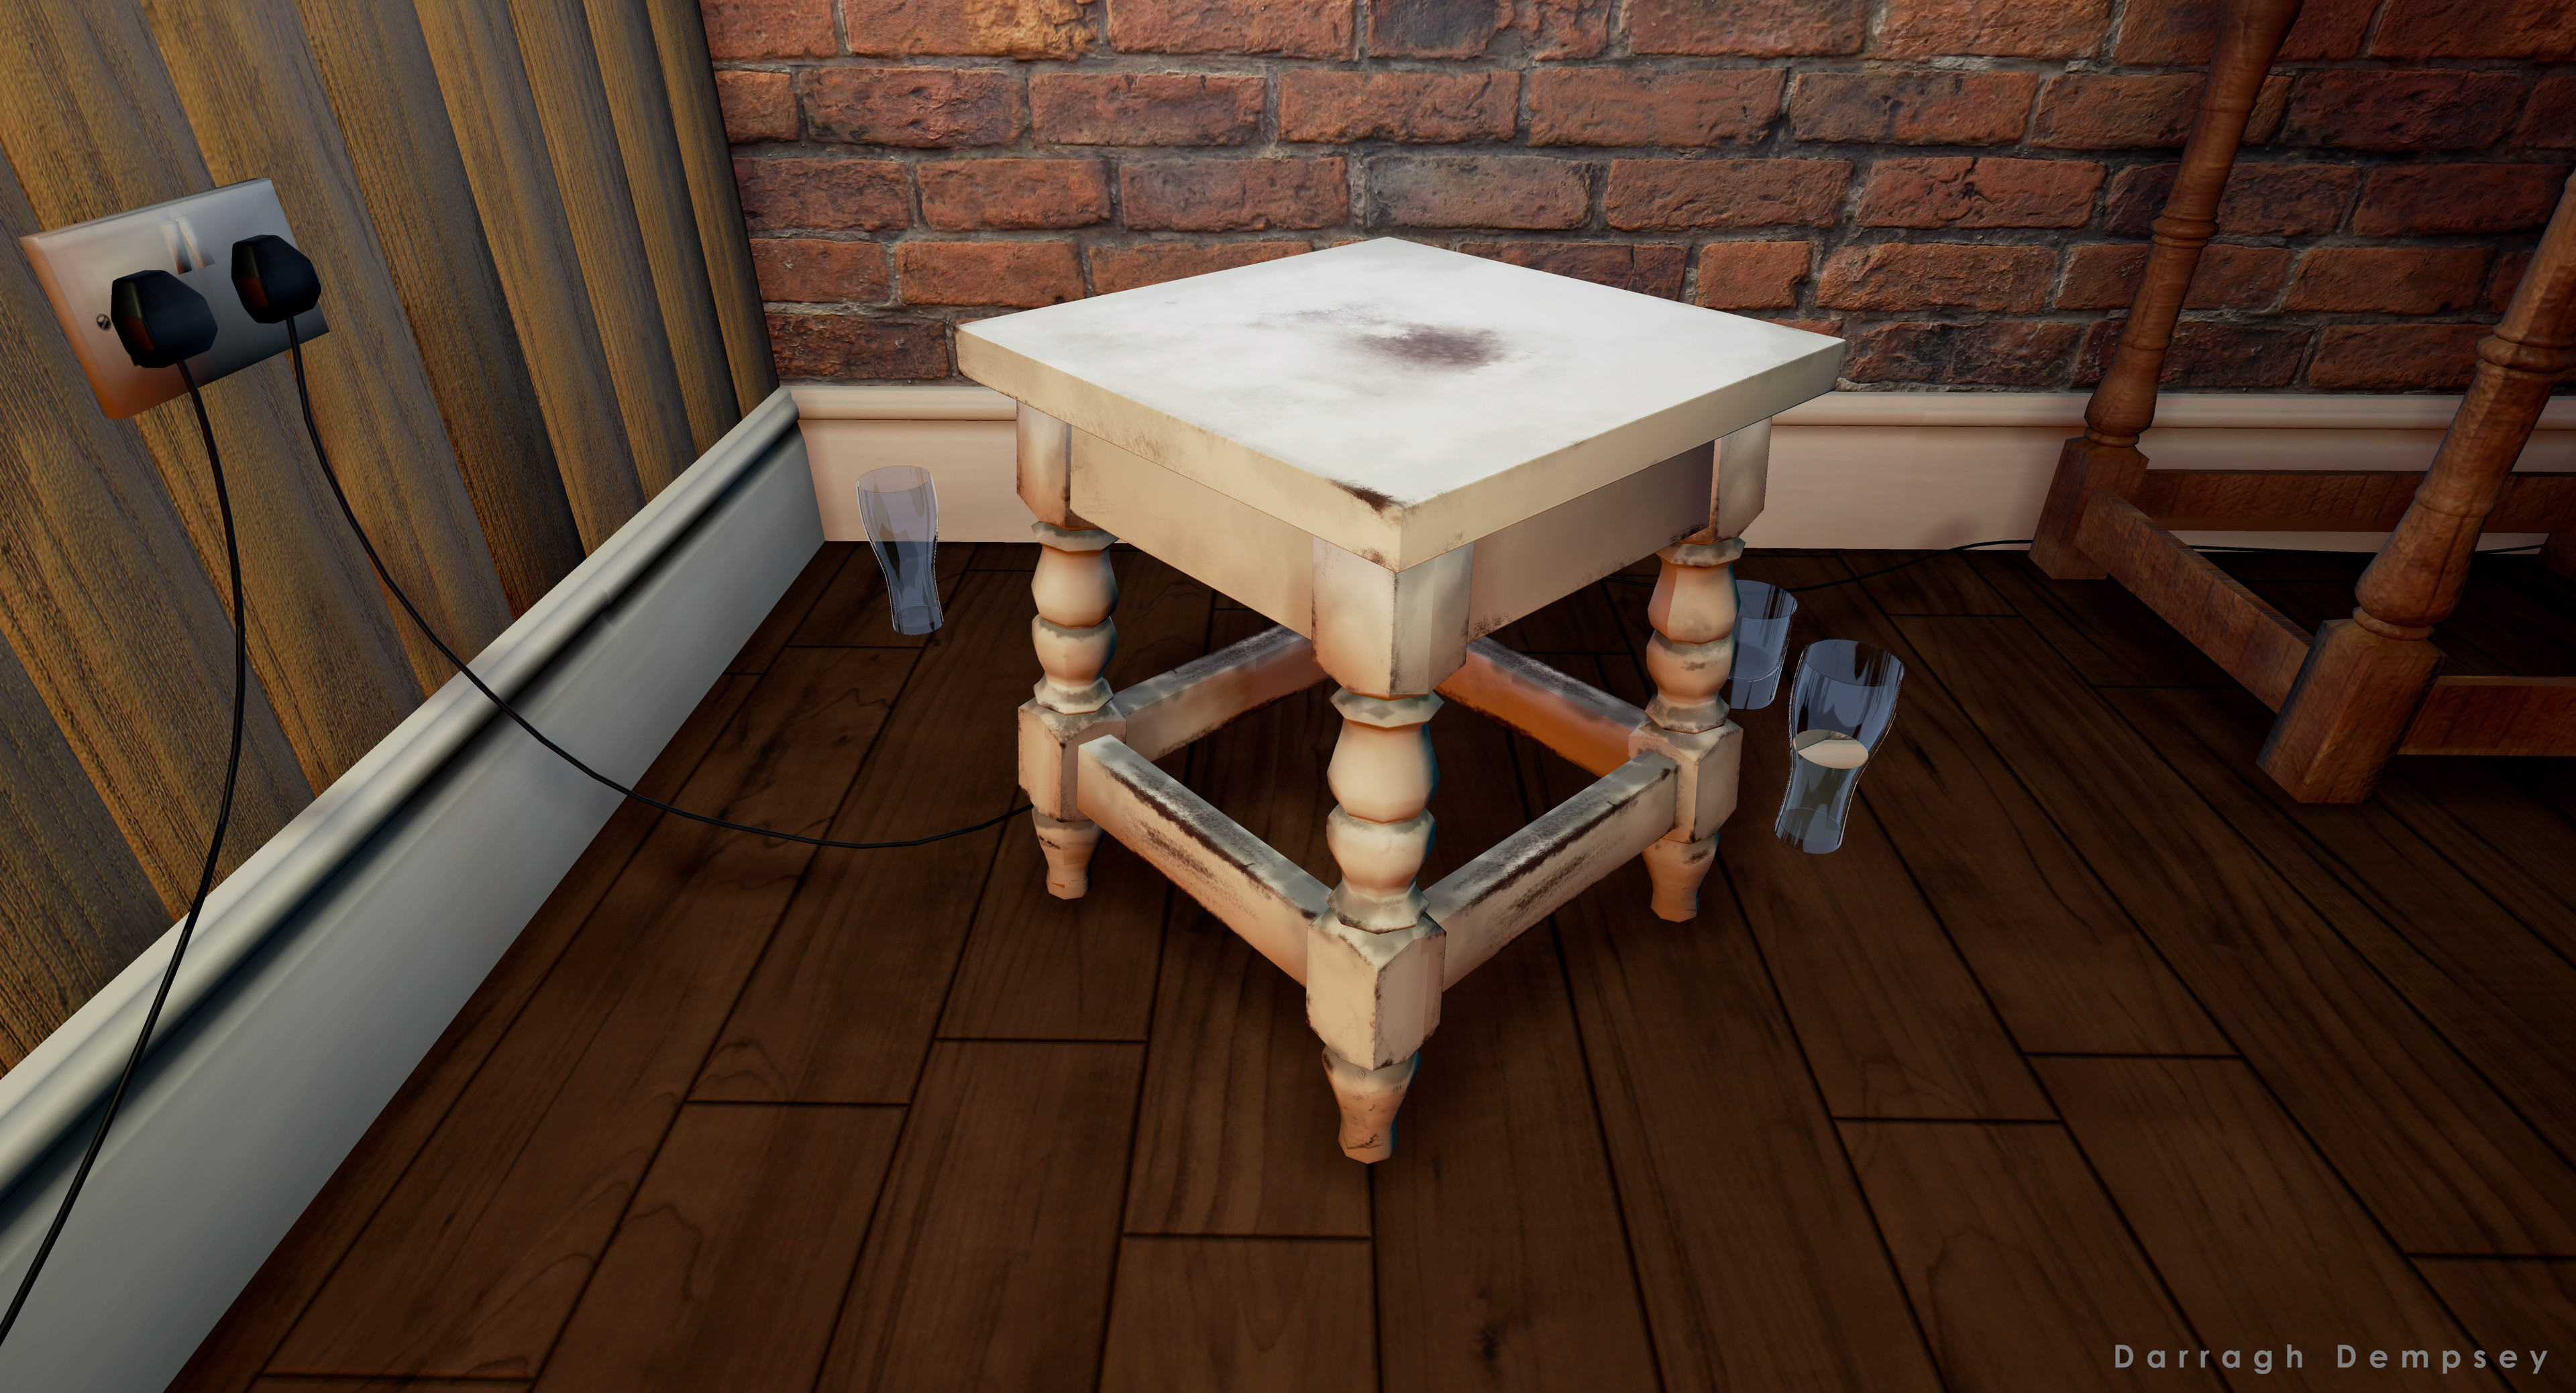 Stool modeled to the exact size of the original. This is the seat that the viewer sits on both inside and outside of the virtual environment. Unreal Engine screenshot.